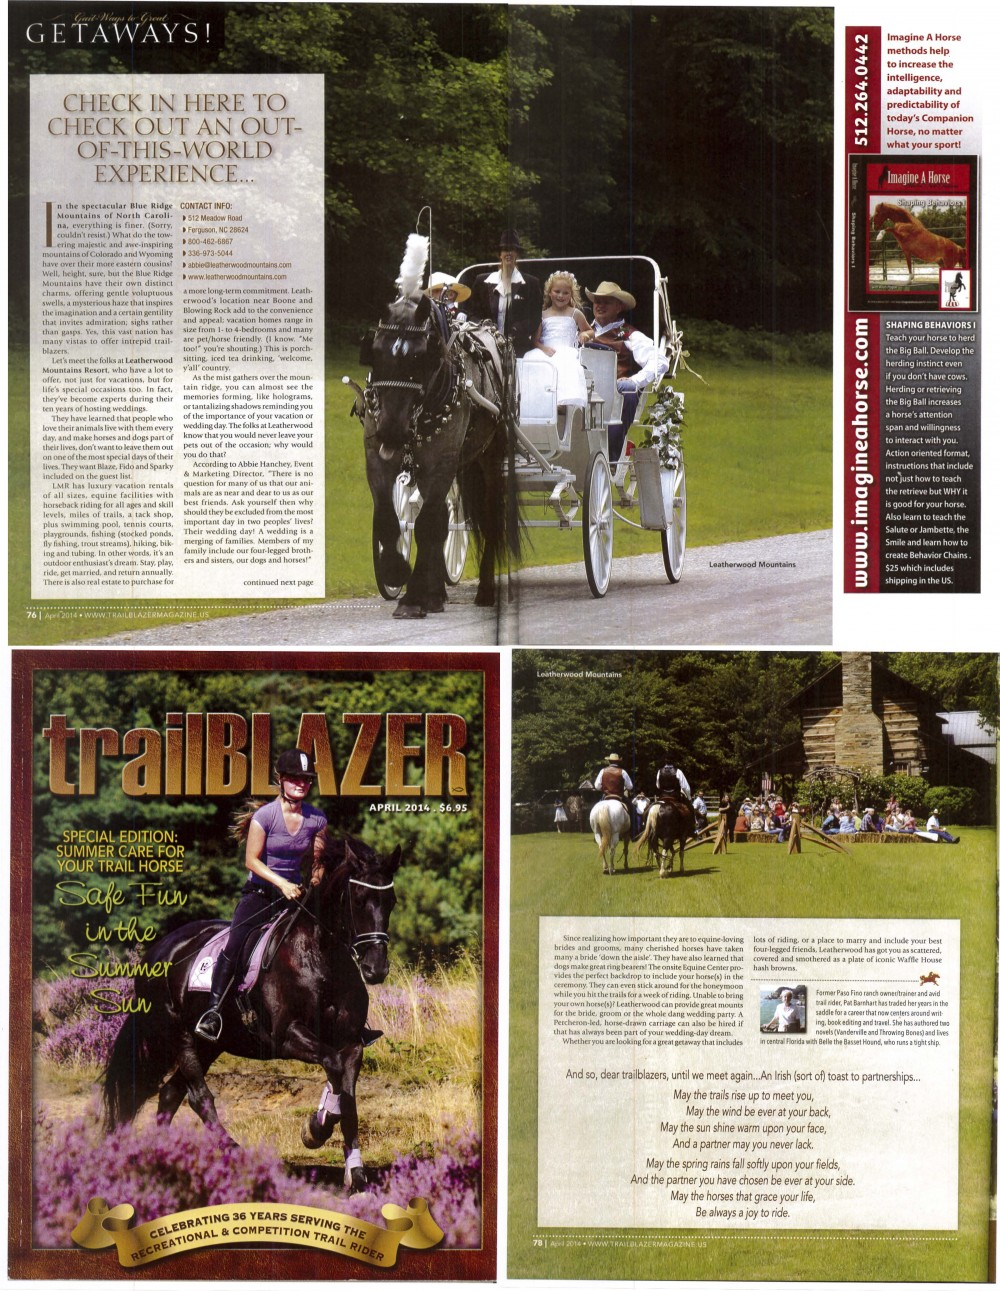 trail blazer feature april 2014